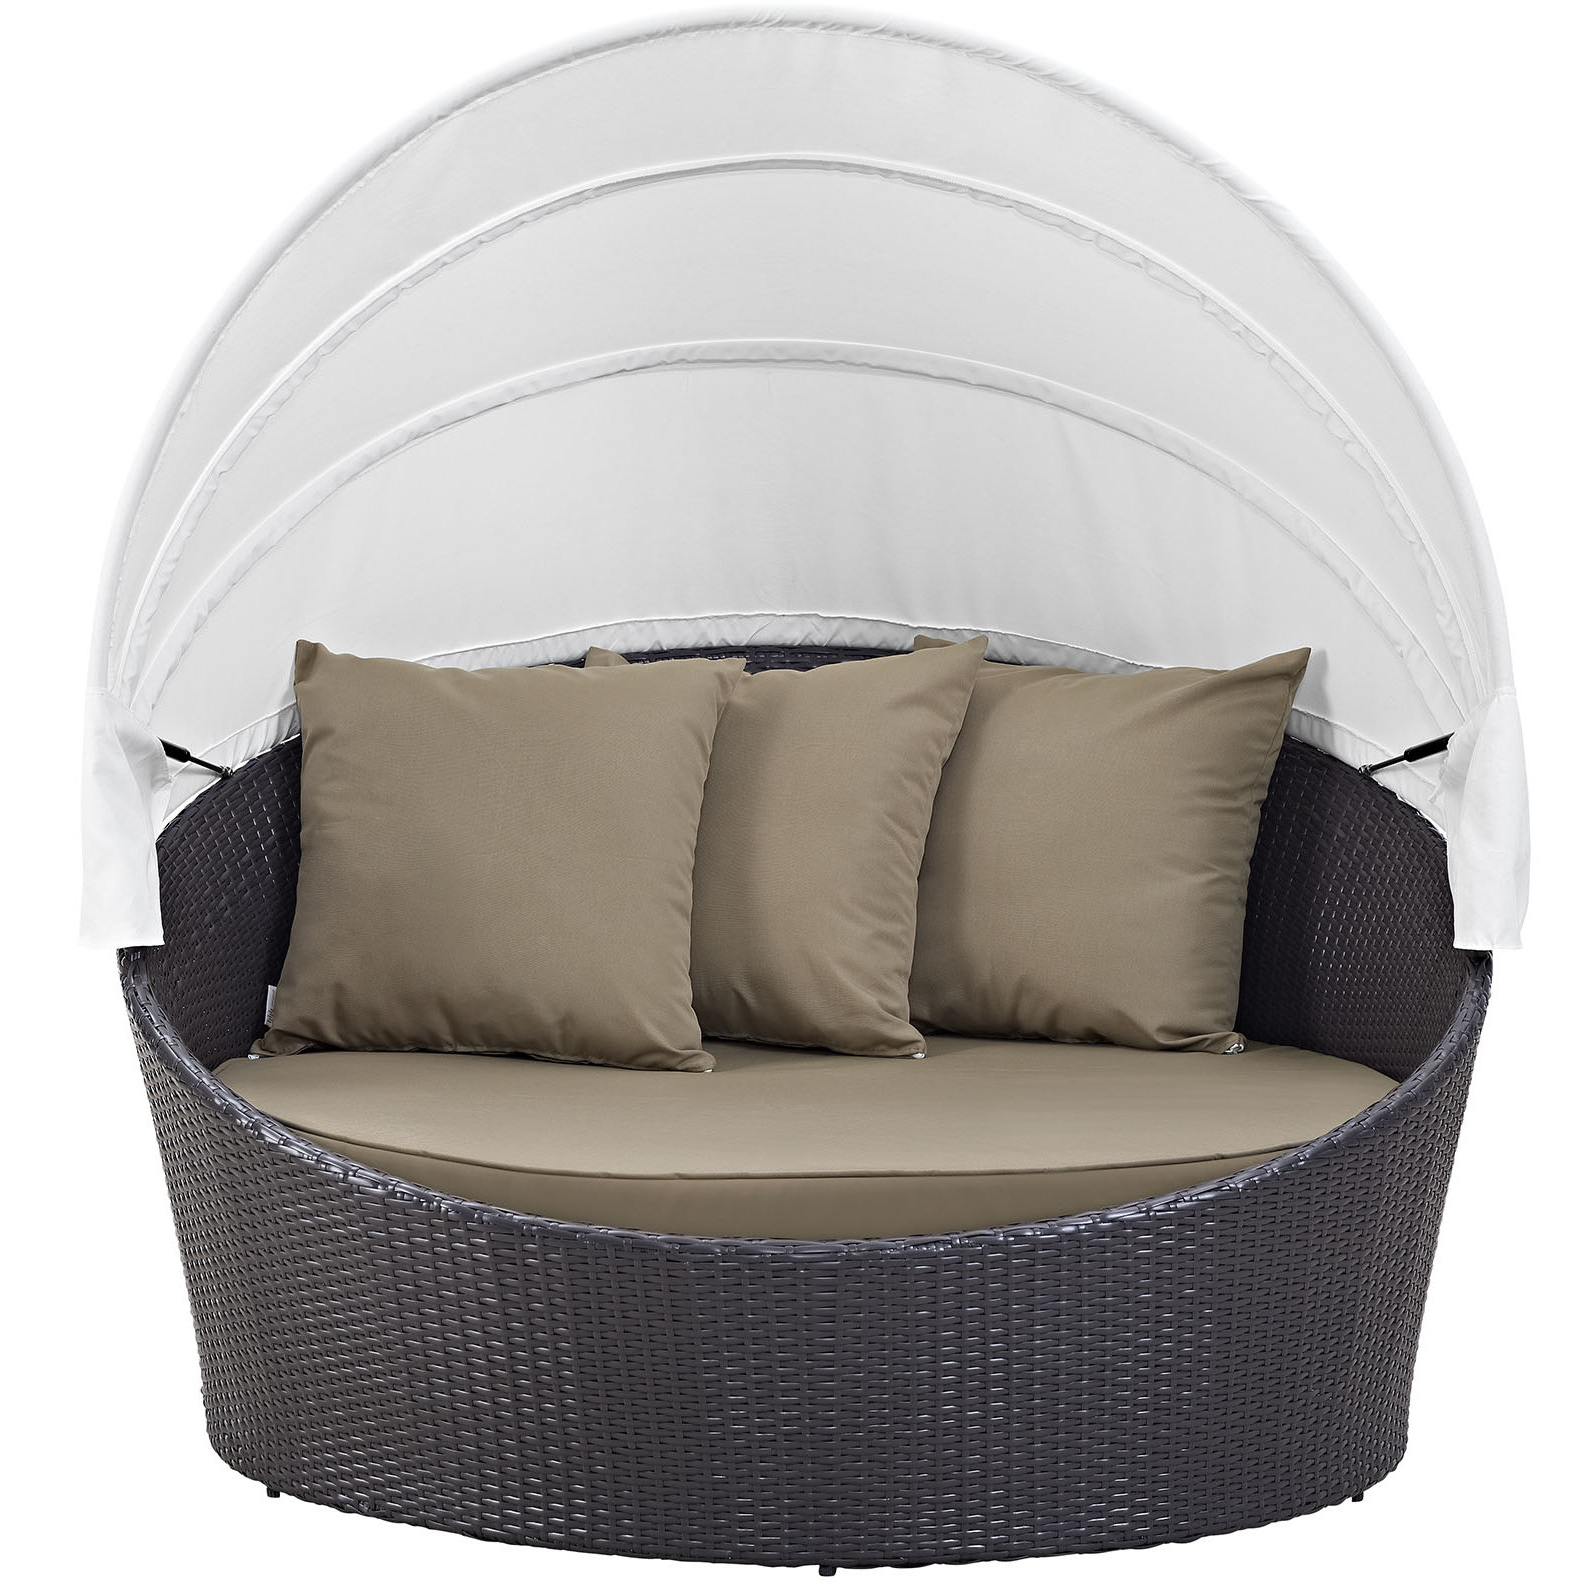 Current Tiana Patio Daybeds With Cushions With Brentwood Canopy Patio Daybed With Cushions (View 16 of 20)